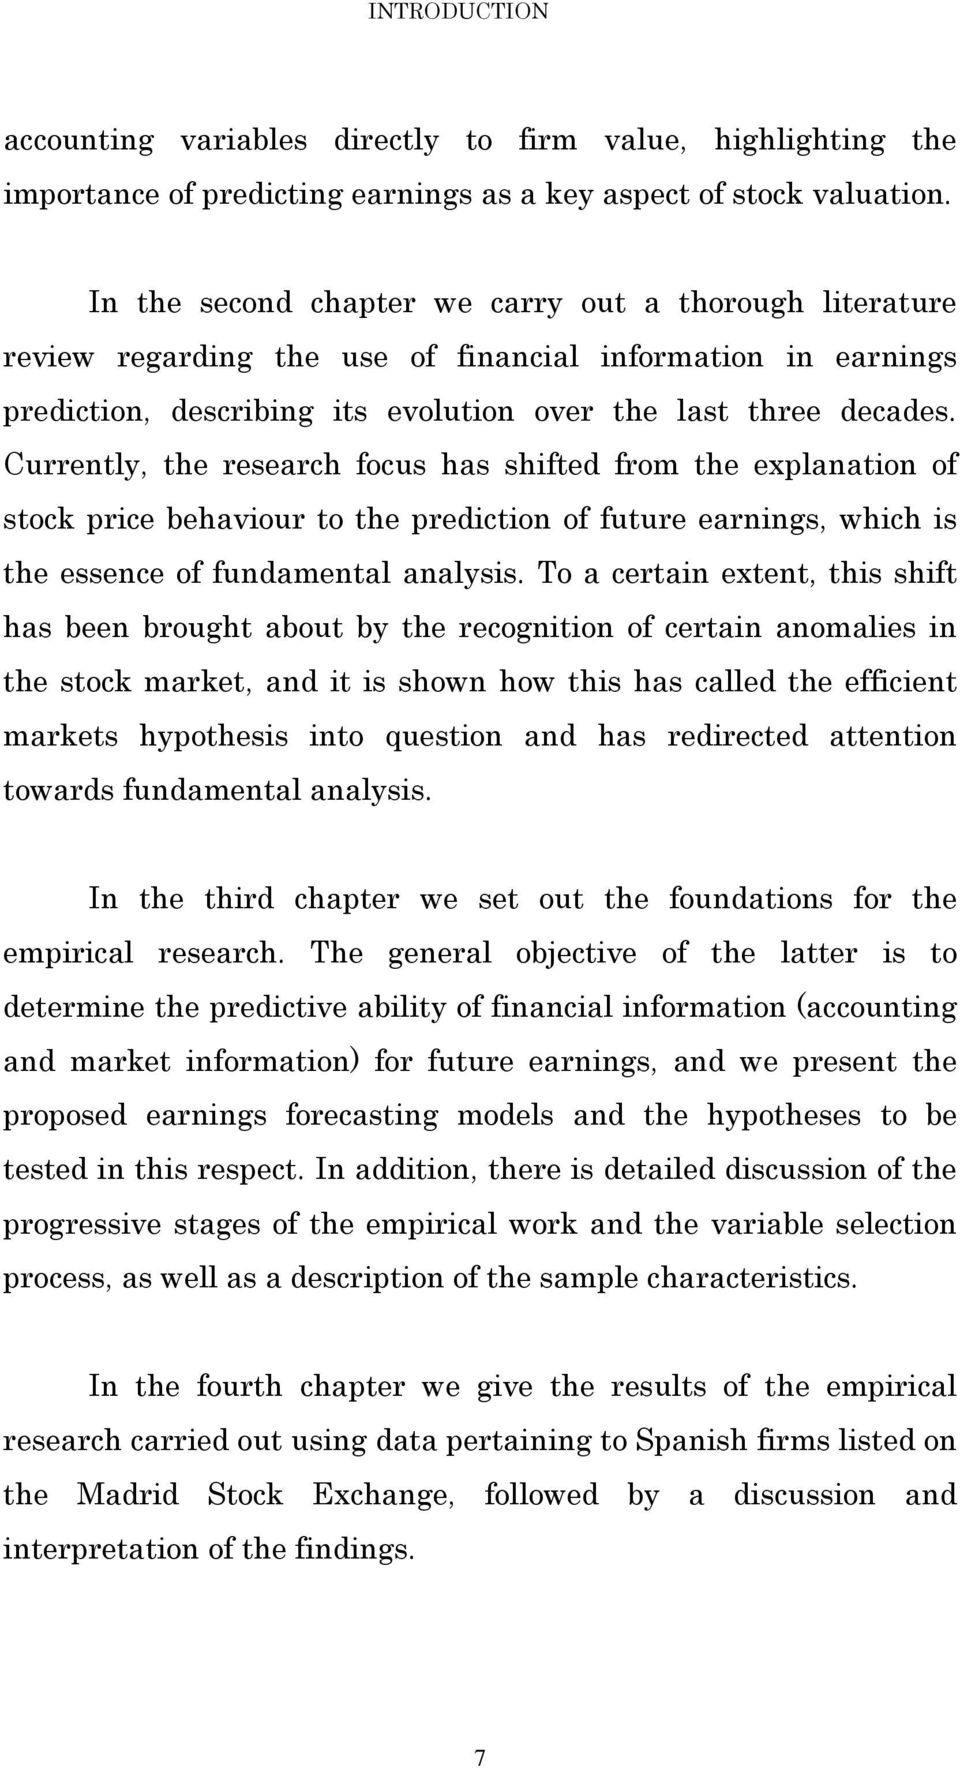 Currently, the research focus has shifted from the explanation of stock price behaviour to the prediction of future earnings, which is the essence of fundamental analysis.